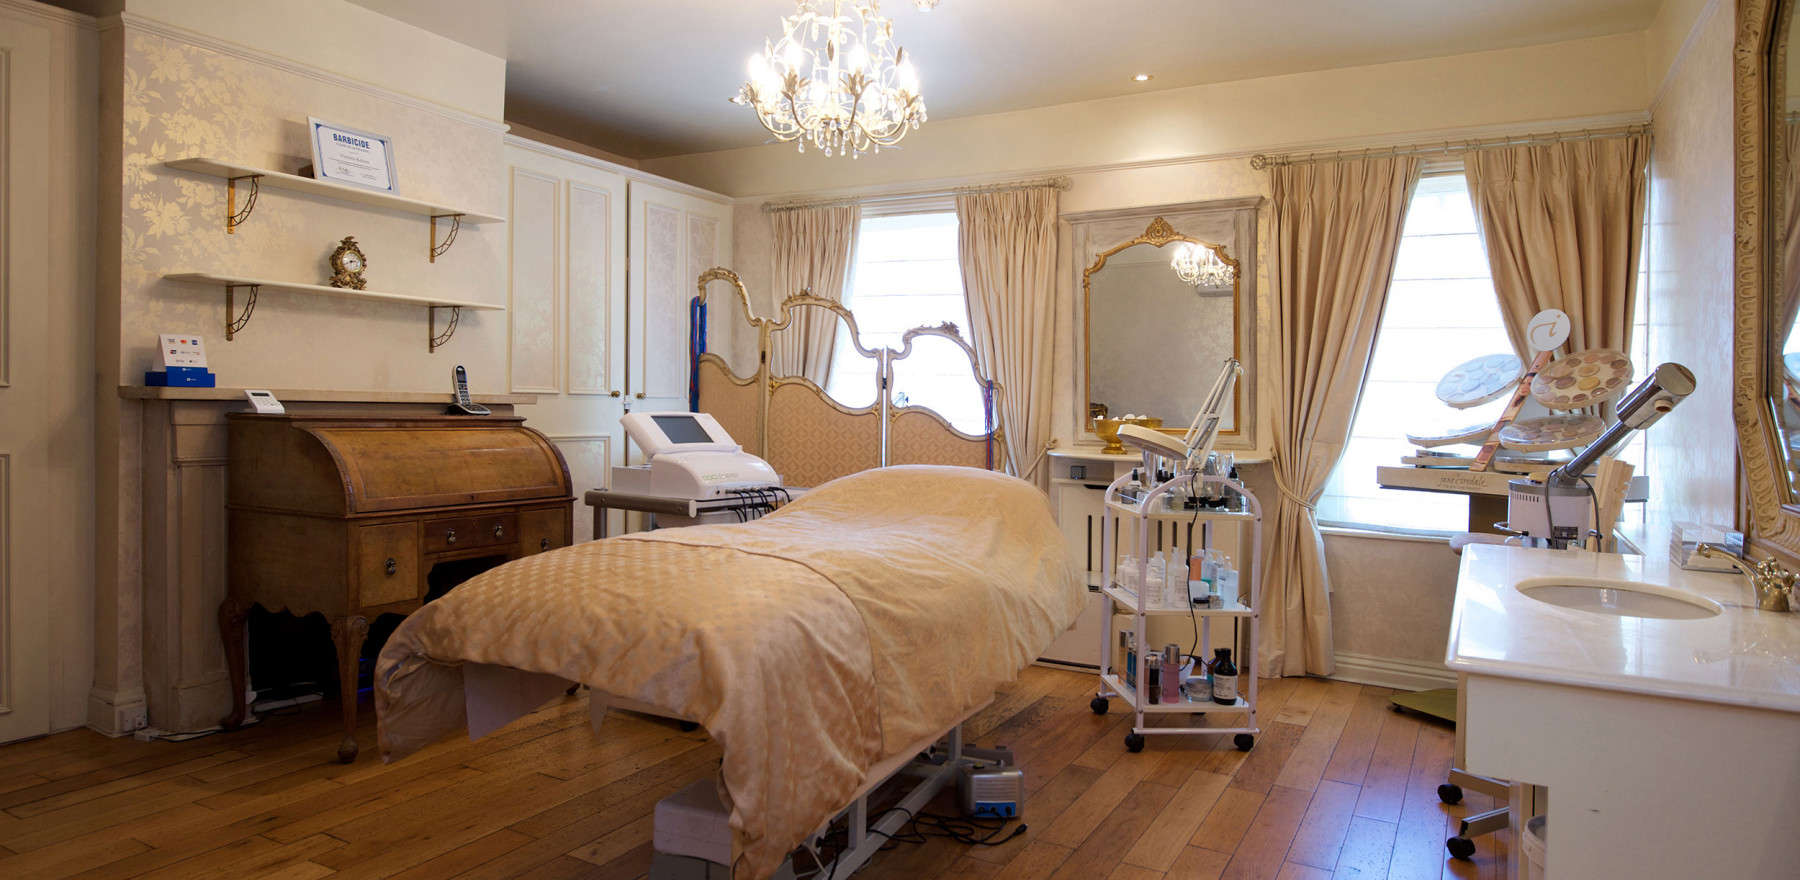 Professional beauty therapy and make-up in Guildford, Surrey.